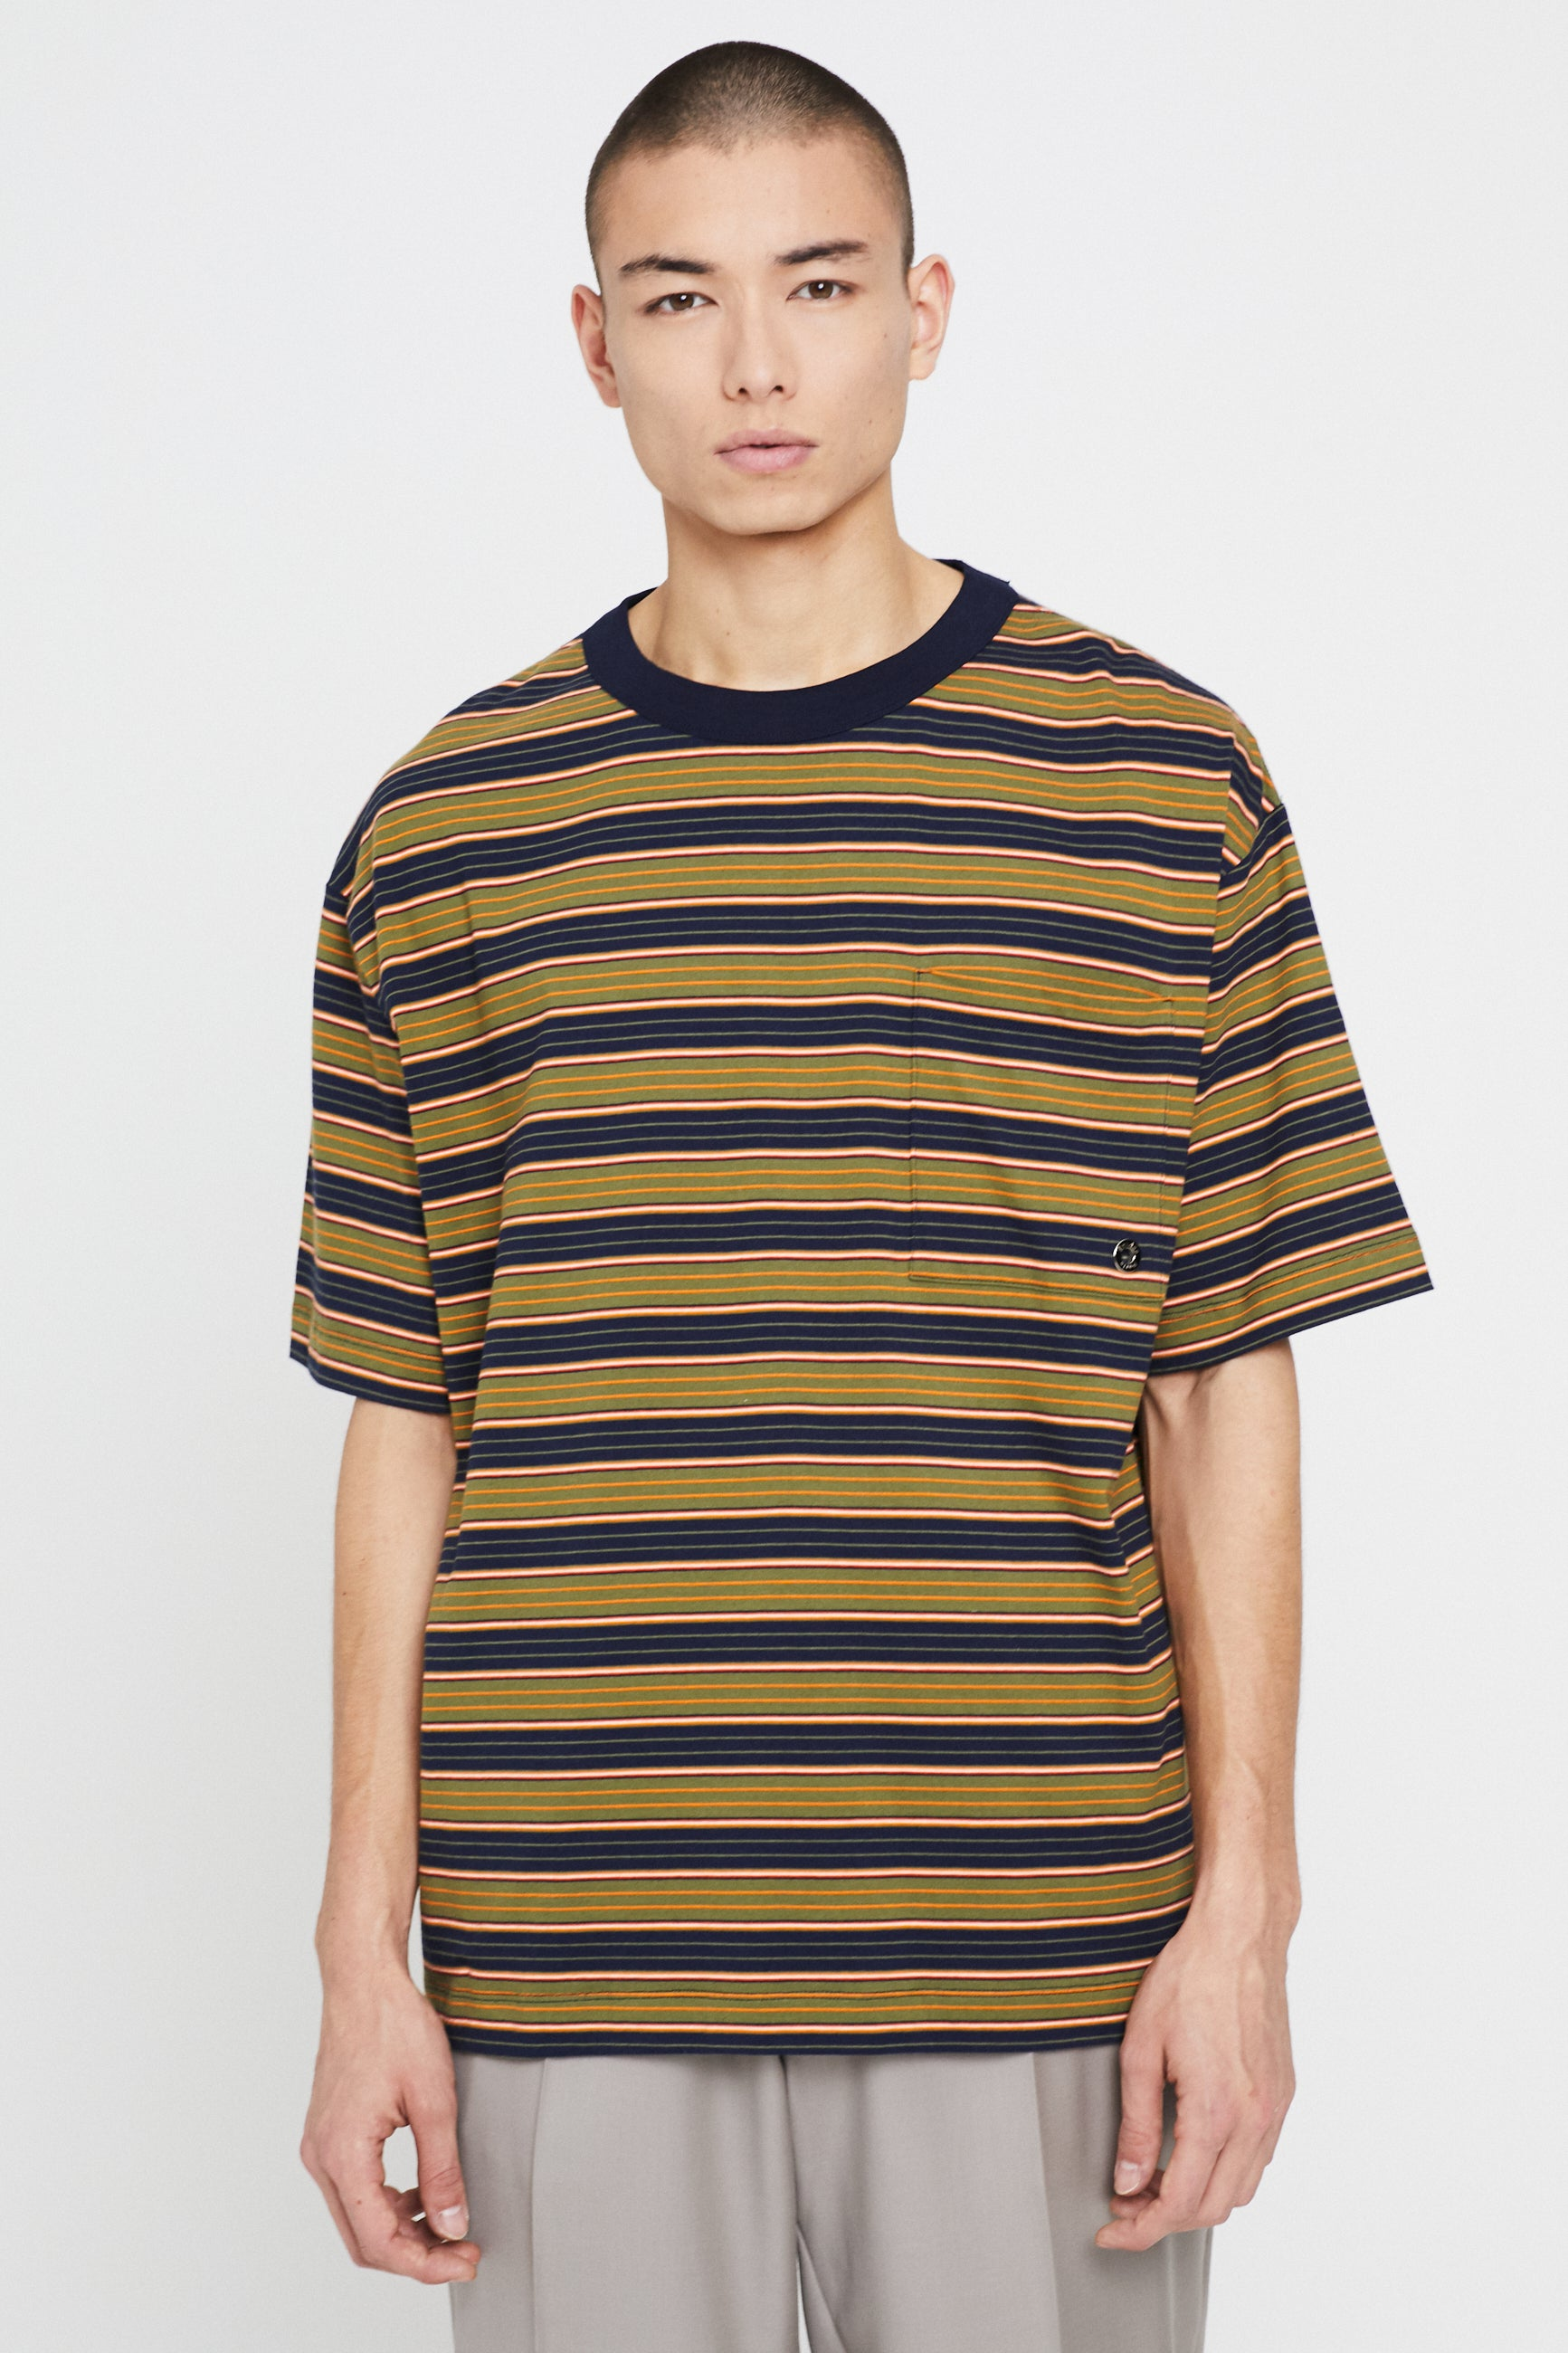 Études Museum Striped T-Shirt 3